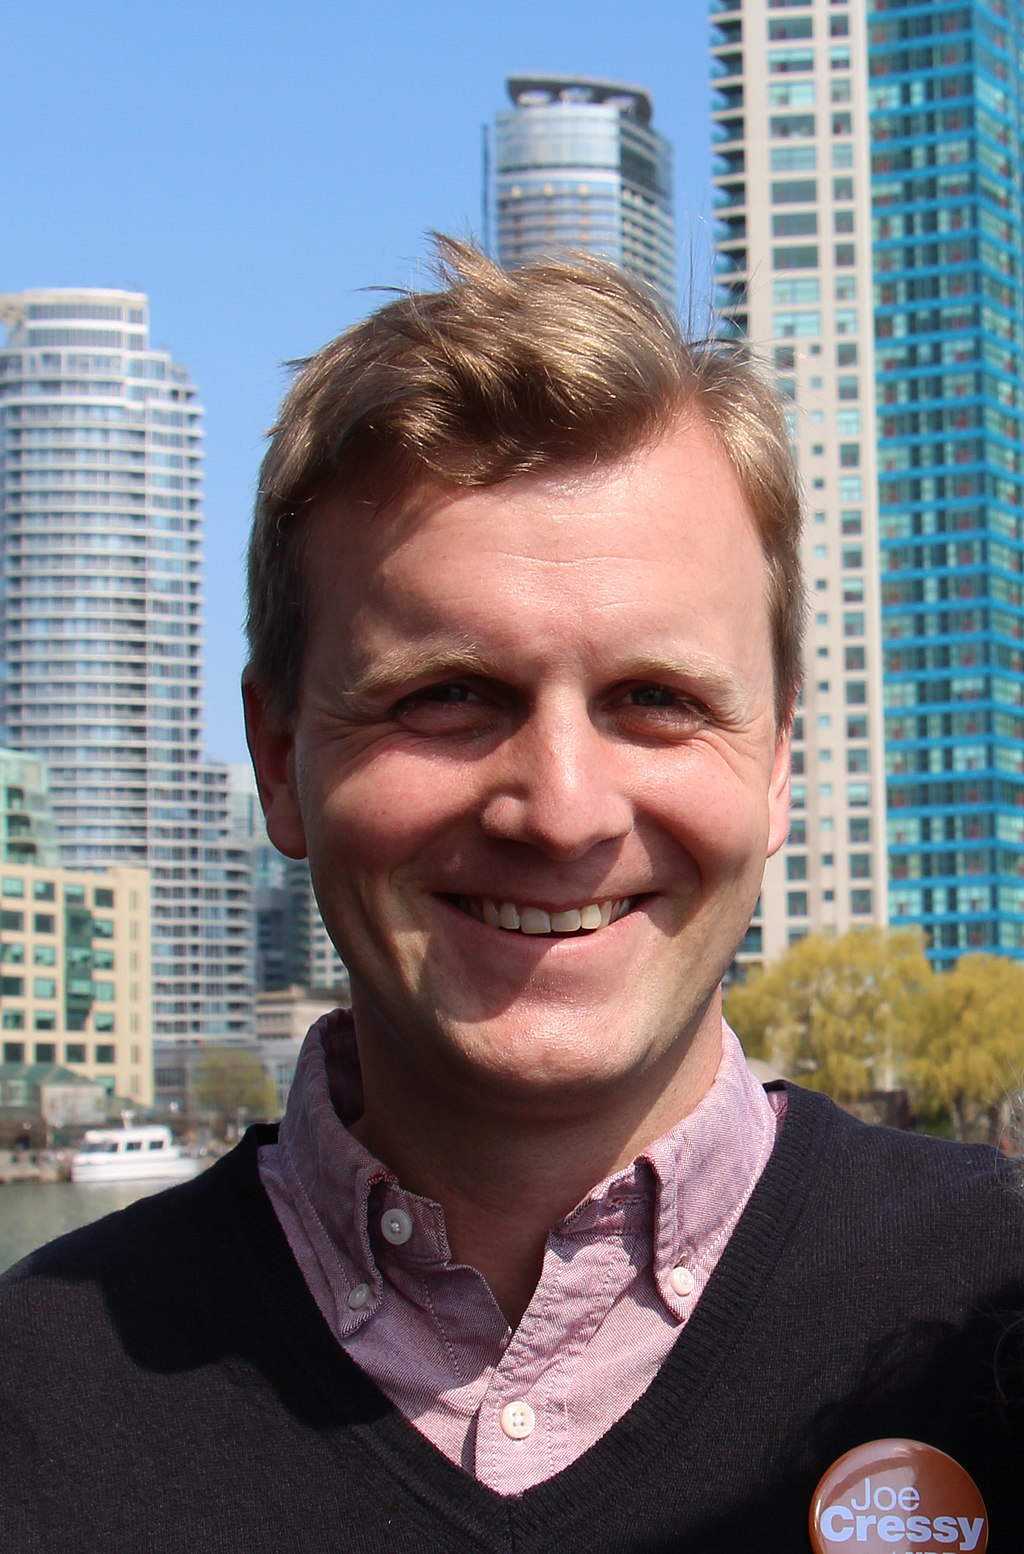 Joe Cressy in 2014. Photo by Tim Ehlich via Wikimedia Commons.